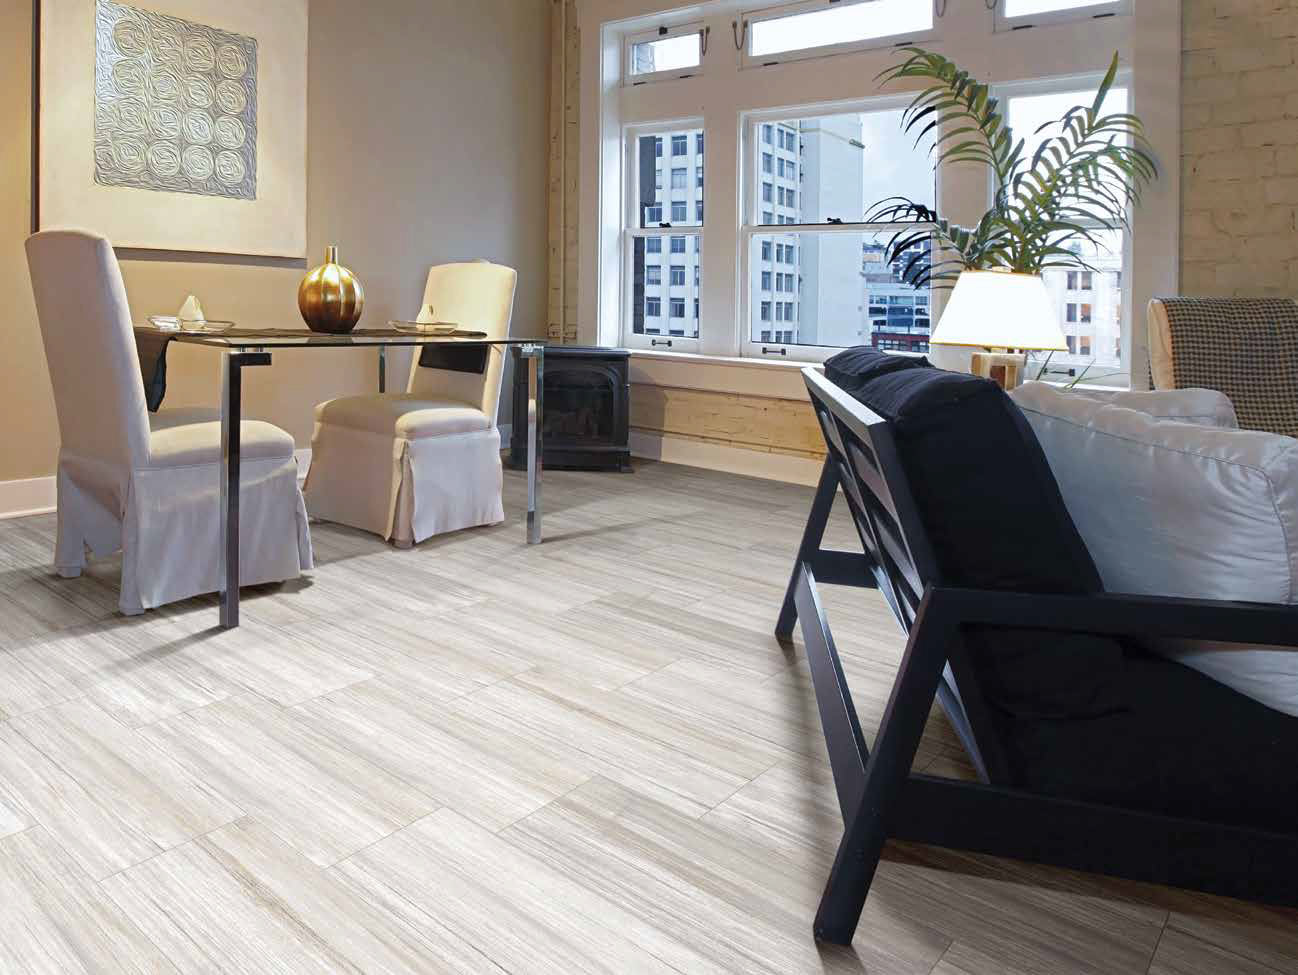 New Products New WoodLook Porcelain Tile Collections In Stock - 24 x 36 porcelain tile